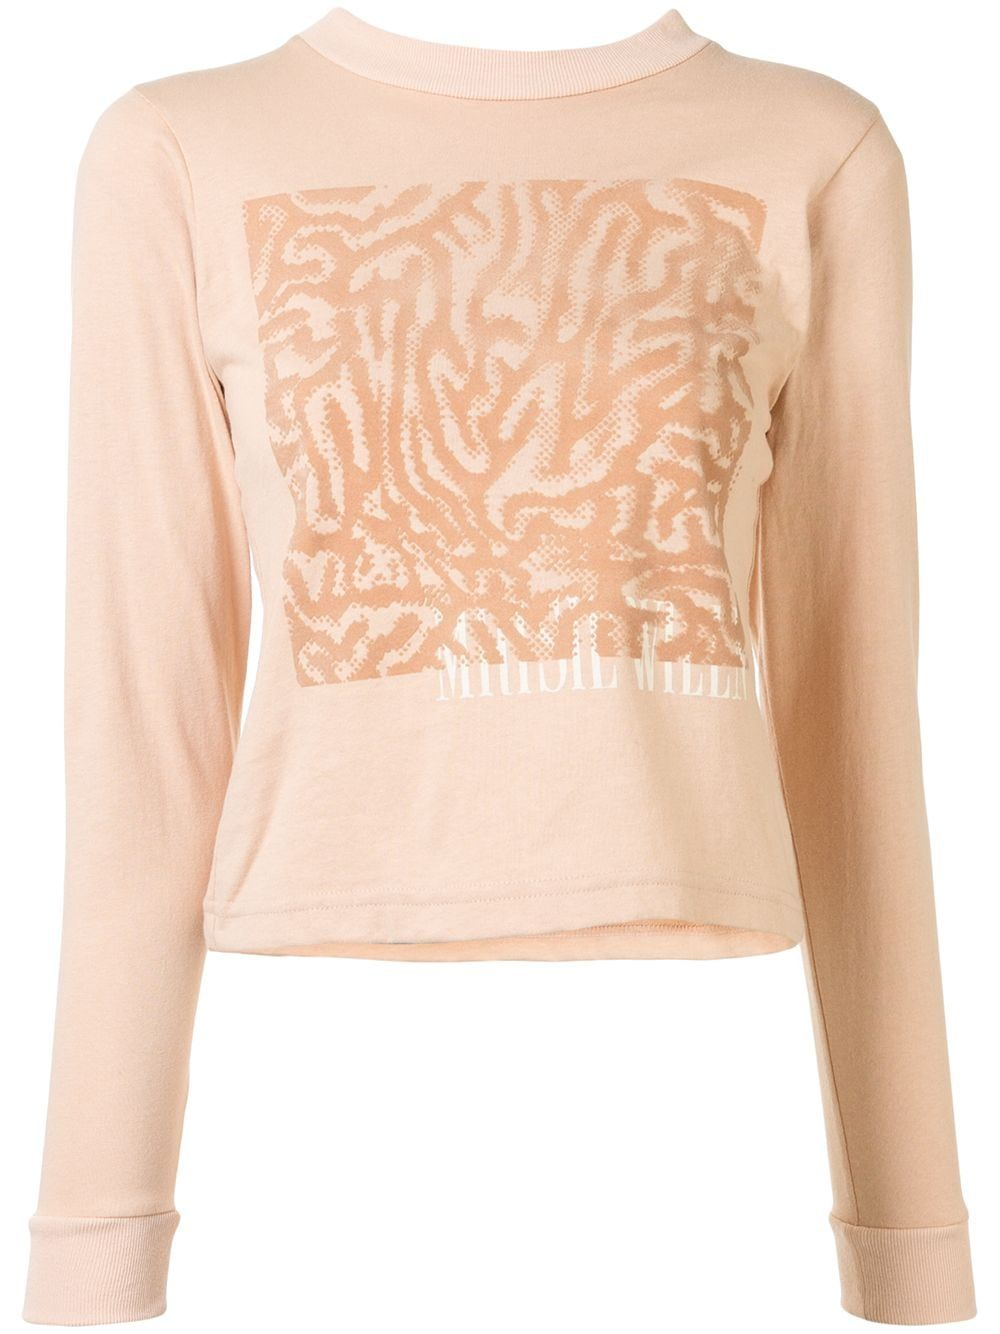 Beige cotton YS104 graphic T-shirt from Maisie Wilen featuring a ribbed collar, a print to the front, long sleeves, ribbed cuffs and a straight hem.